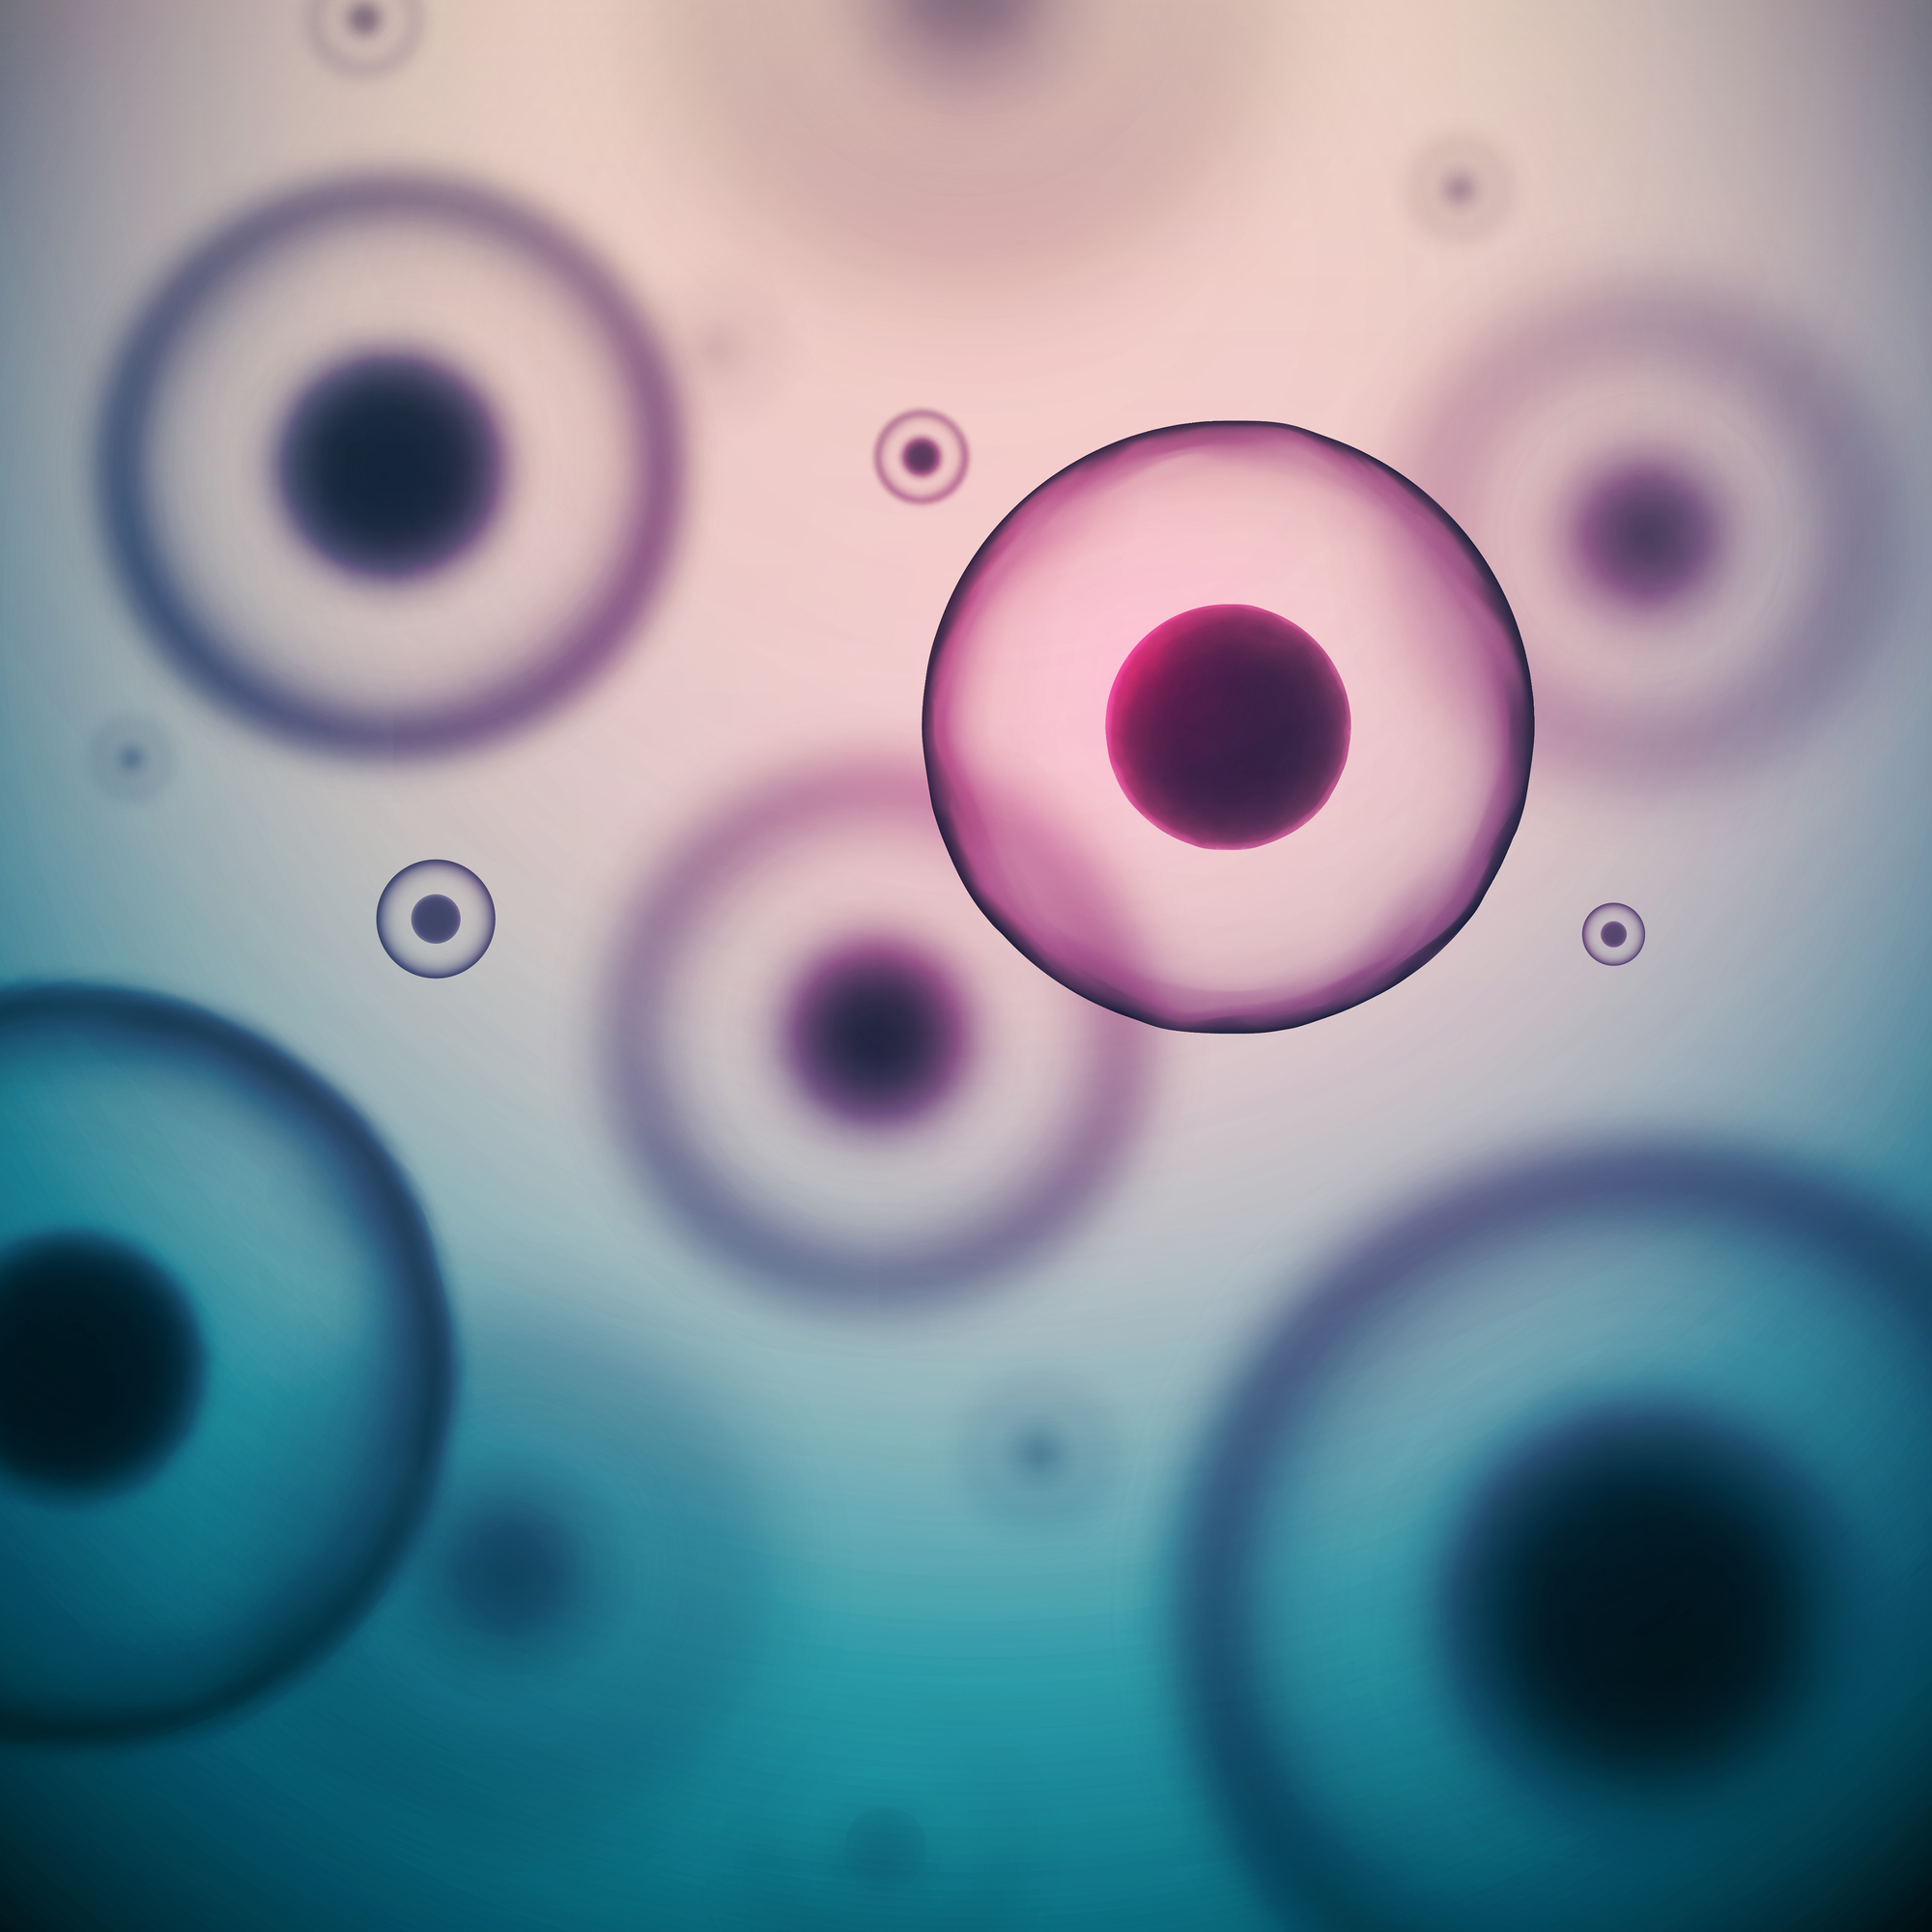 A new anti-aging breakthrough could clear out senescent cells with great precision